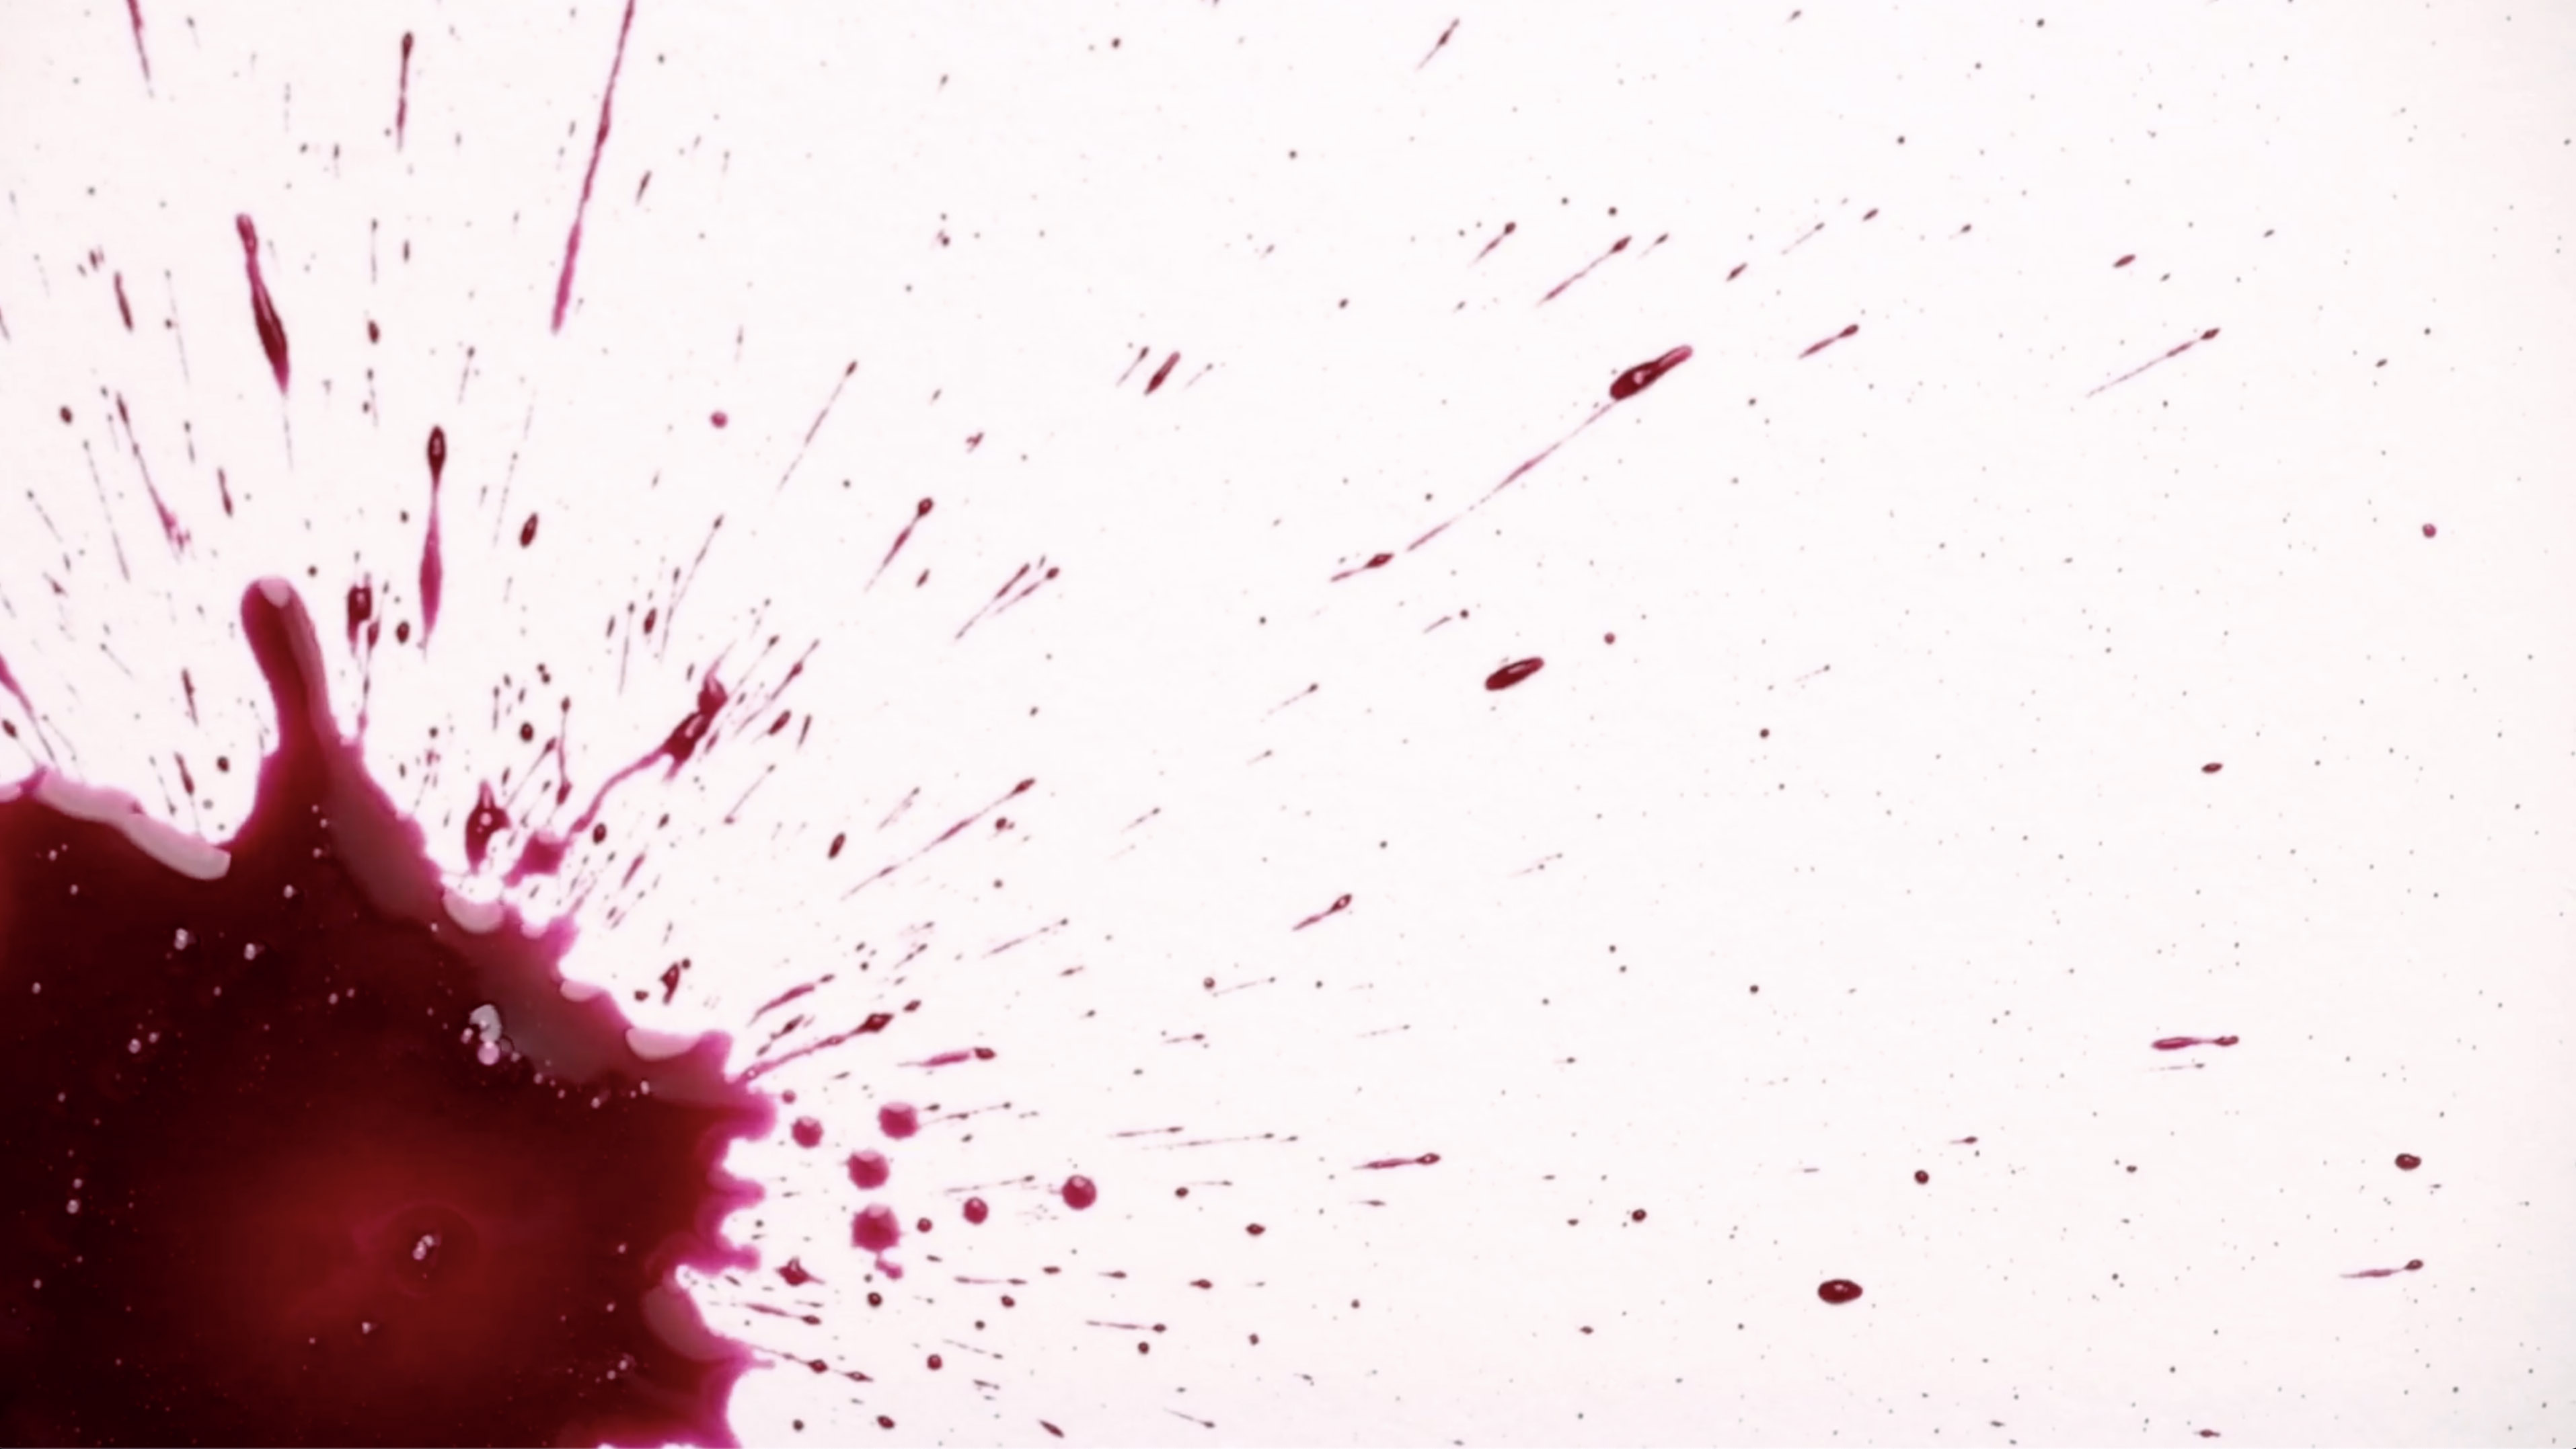 COCHINEAL INKS